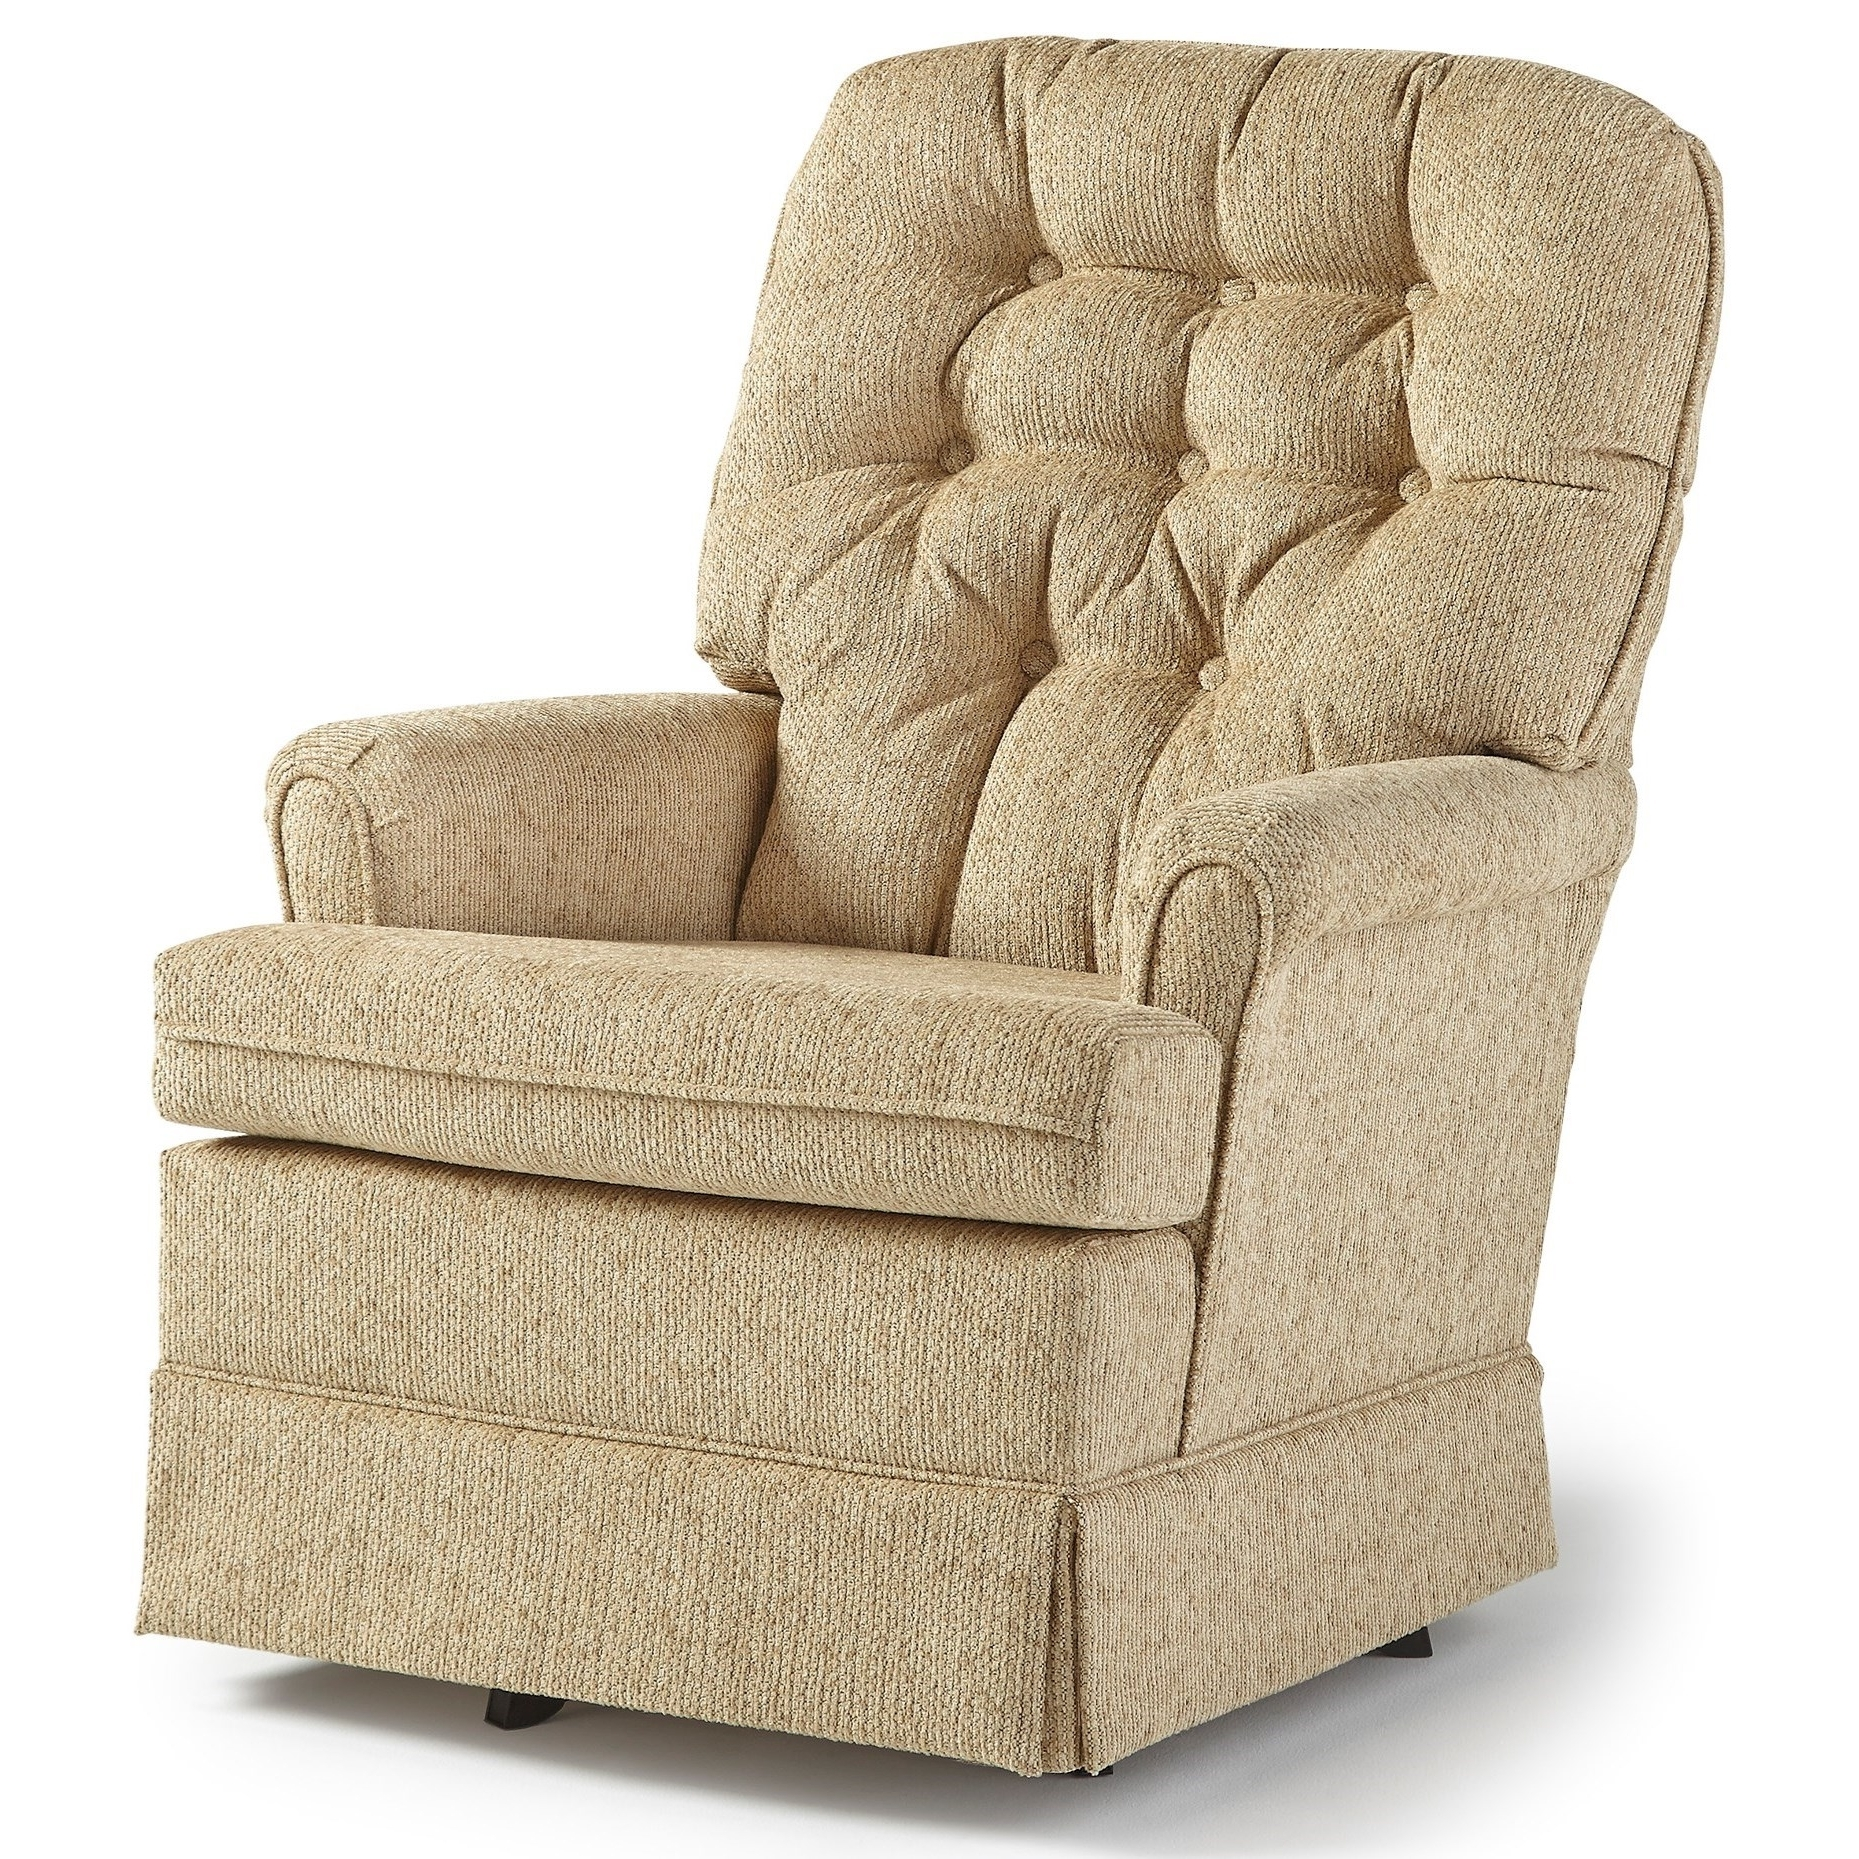 Best Home Furnishings Swivel Glide Chairs Joplin Swivel Rocker Chair Inside 2018 Swivel Rocking Chairs (View 3 of 20)